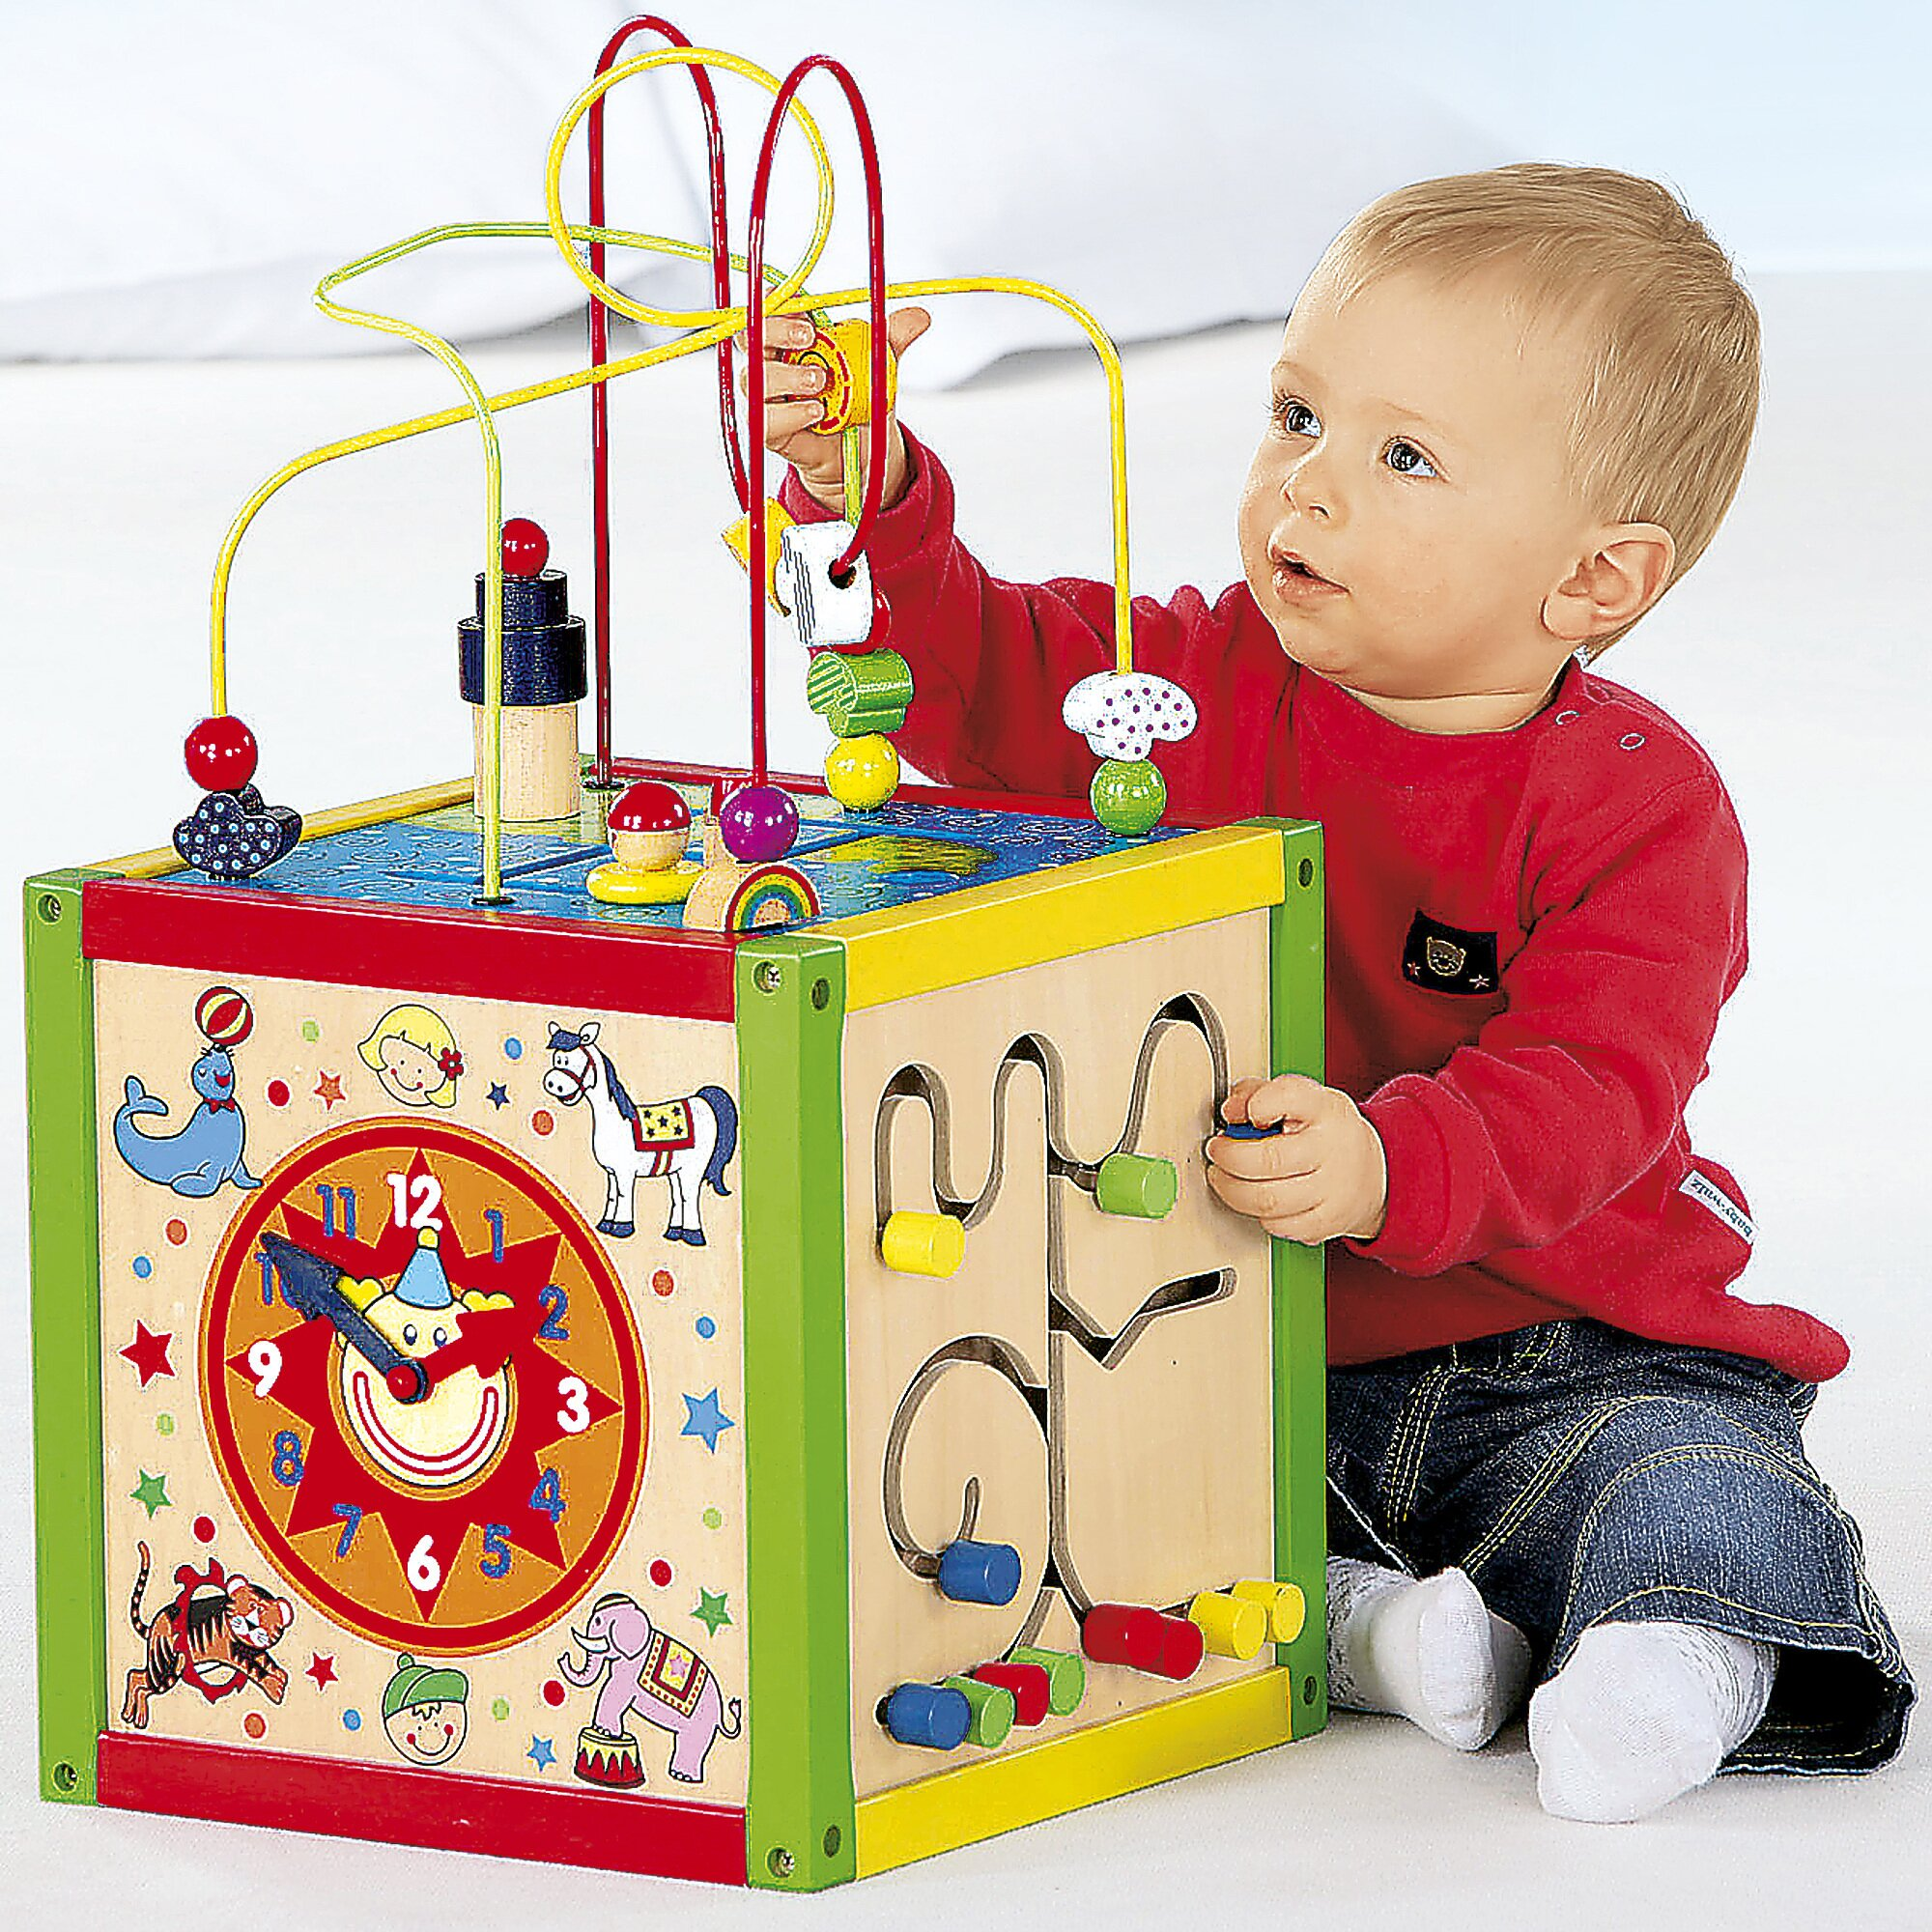 jouets en bois jeux pour 1 3 ans page n 3. Black Bedroom Furniture Sets. Home Design Ideas